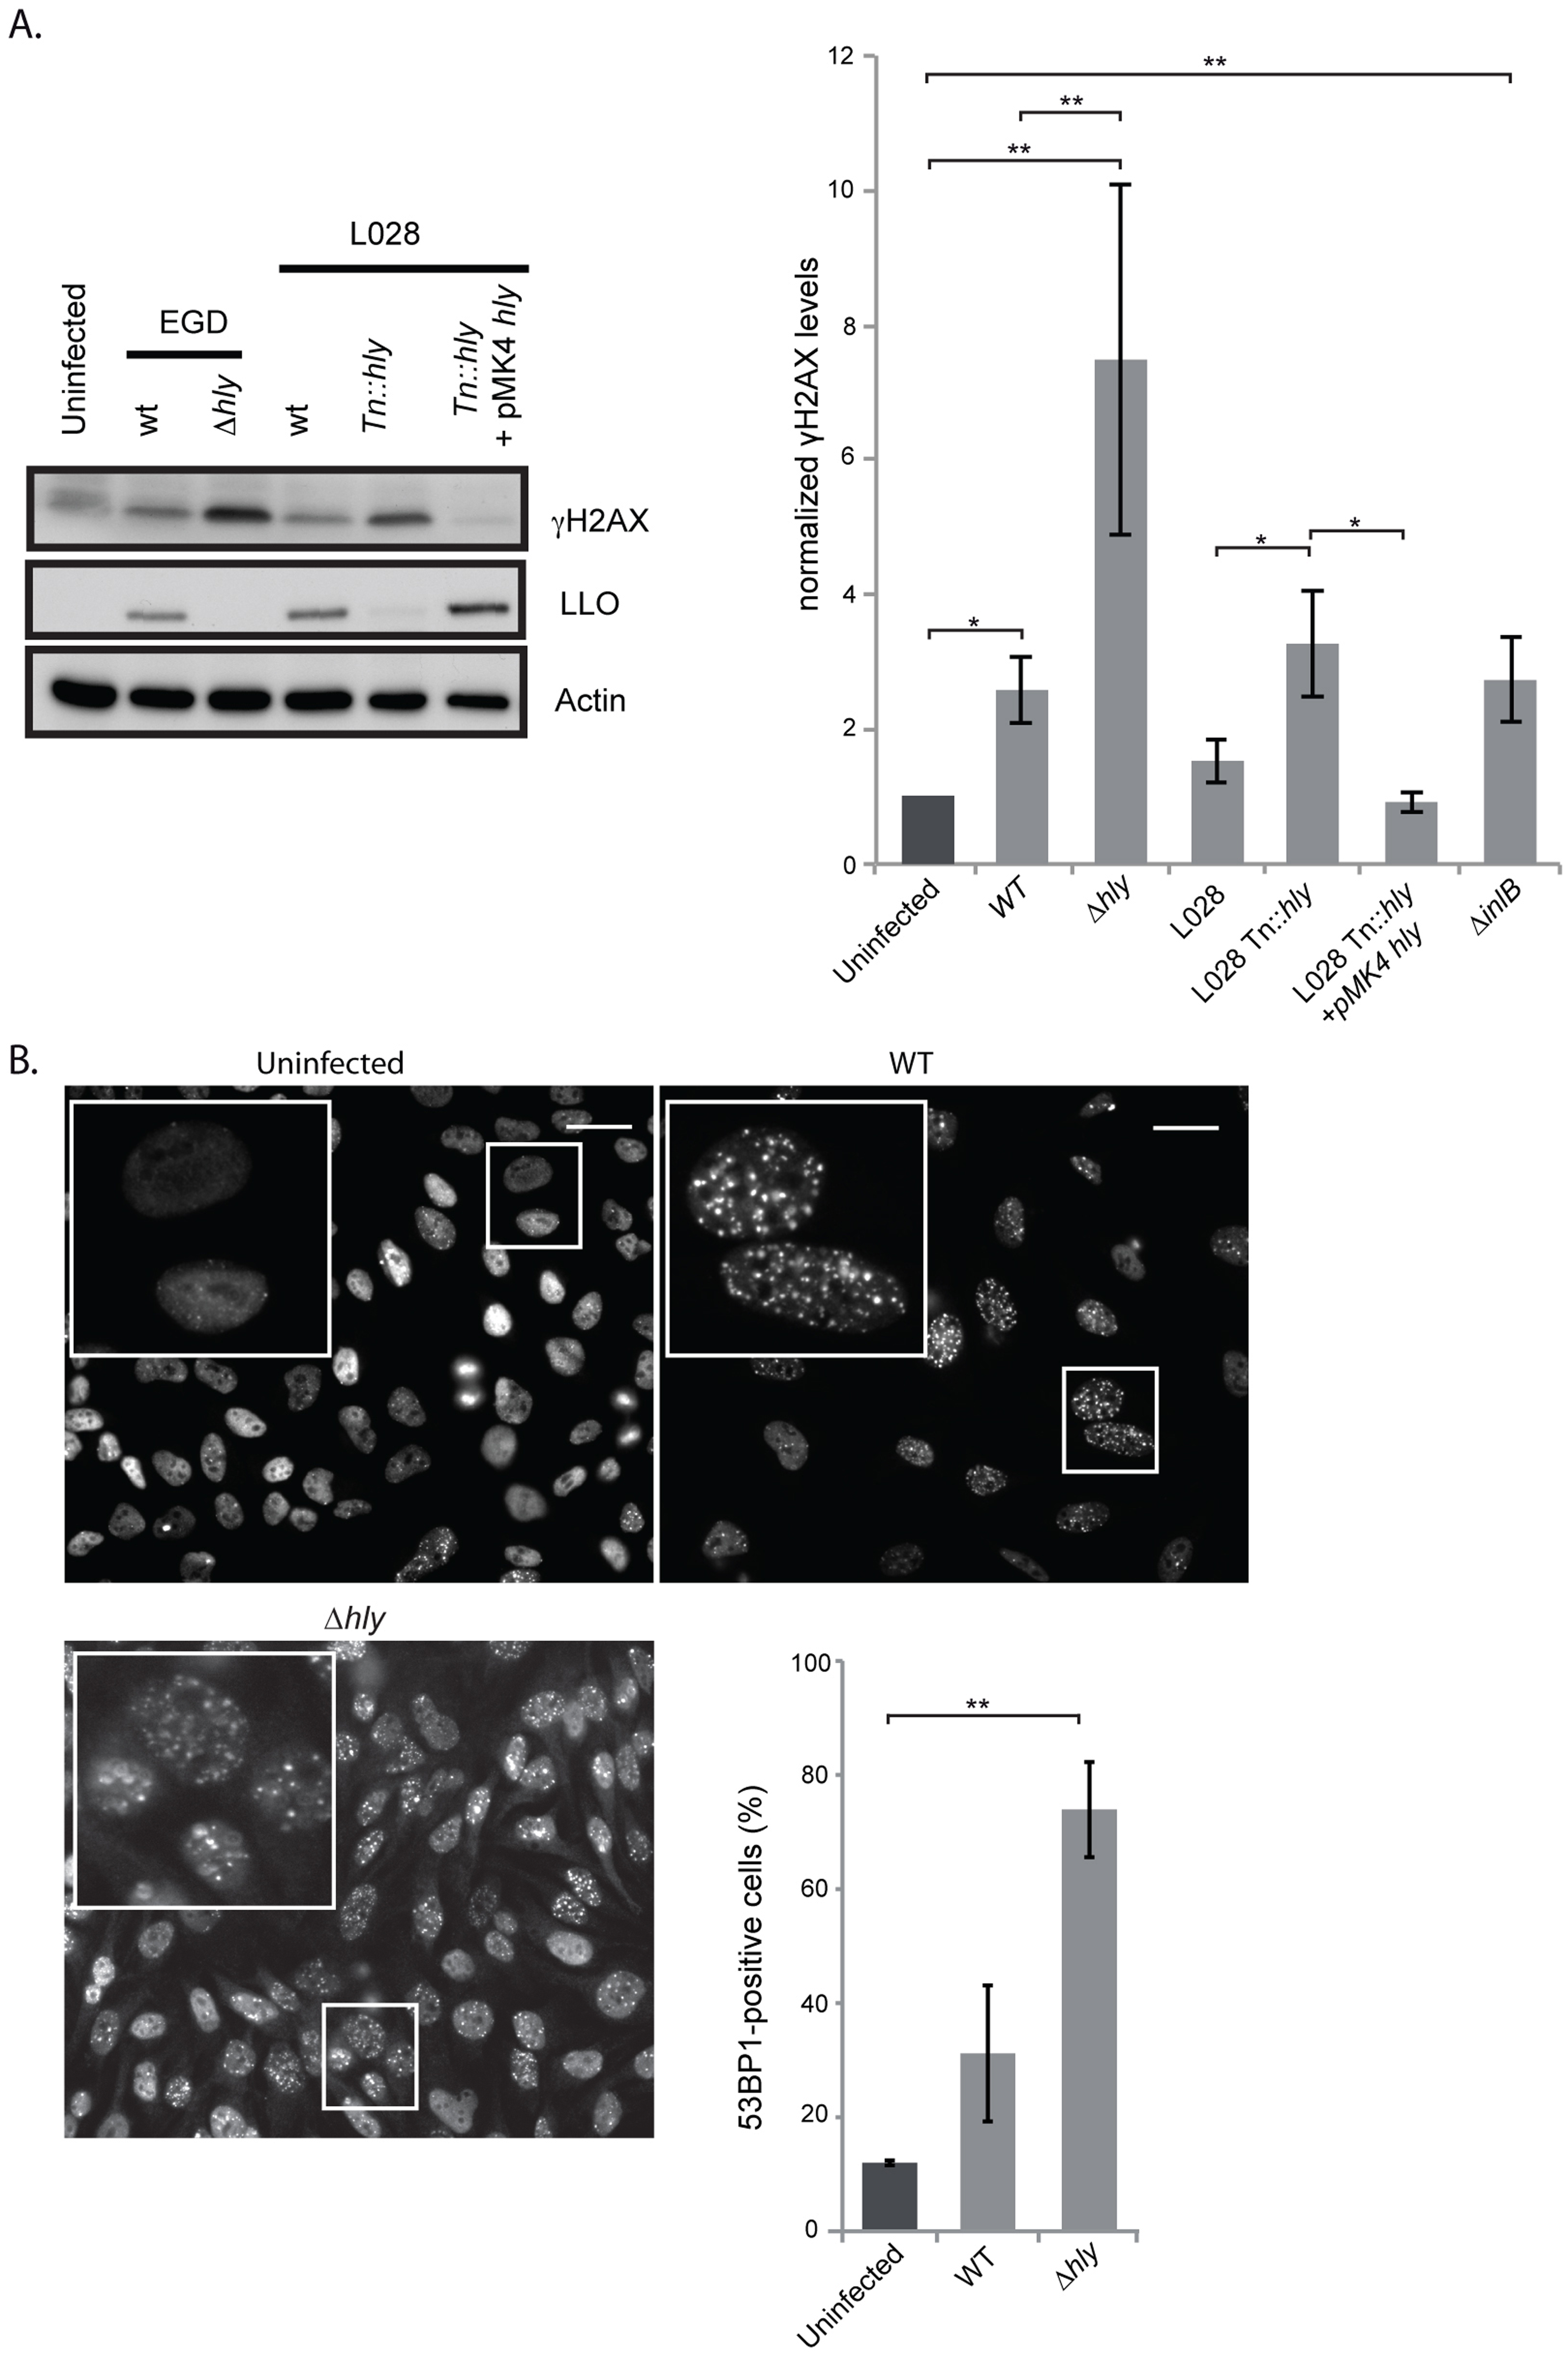 A <i>Δhly</i> mutant induces a higher DNA damage response than wild type <i>Listeria</i>.